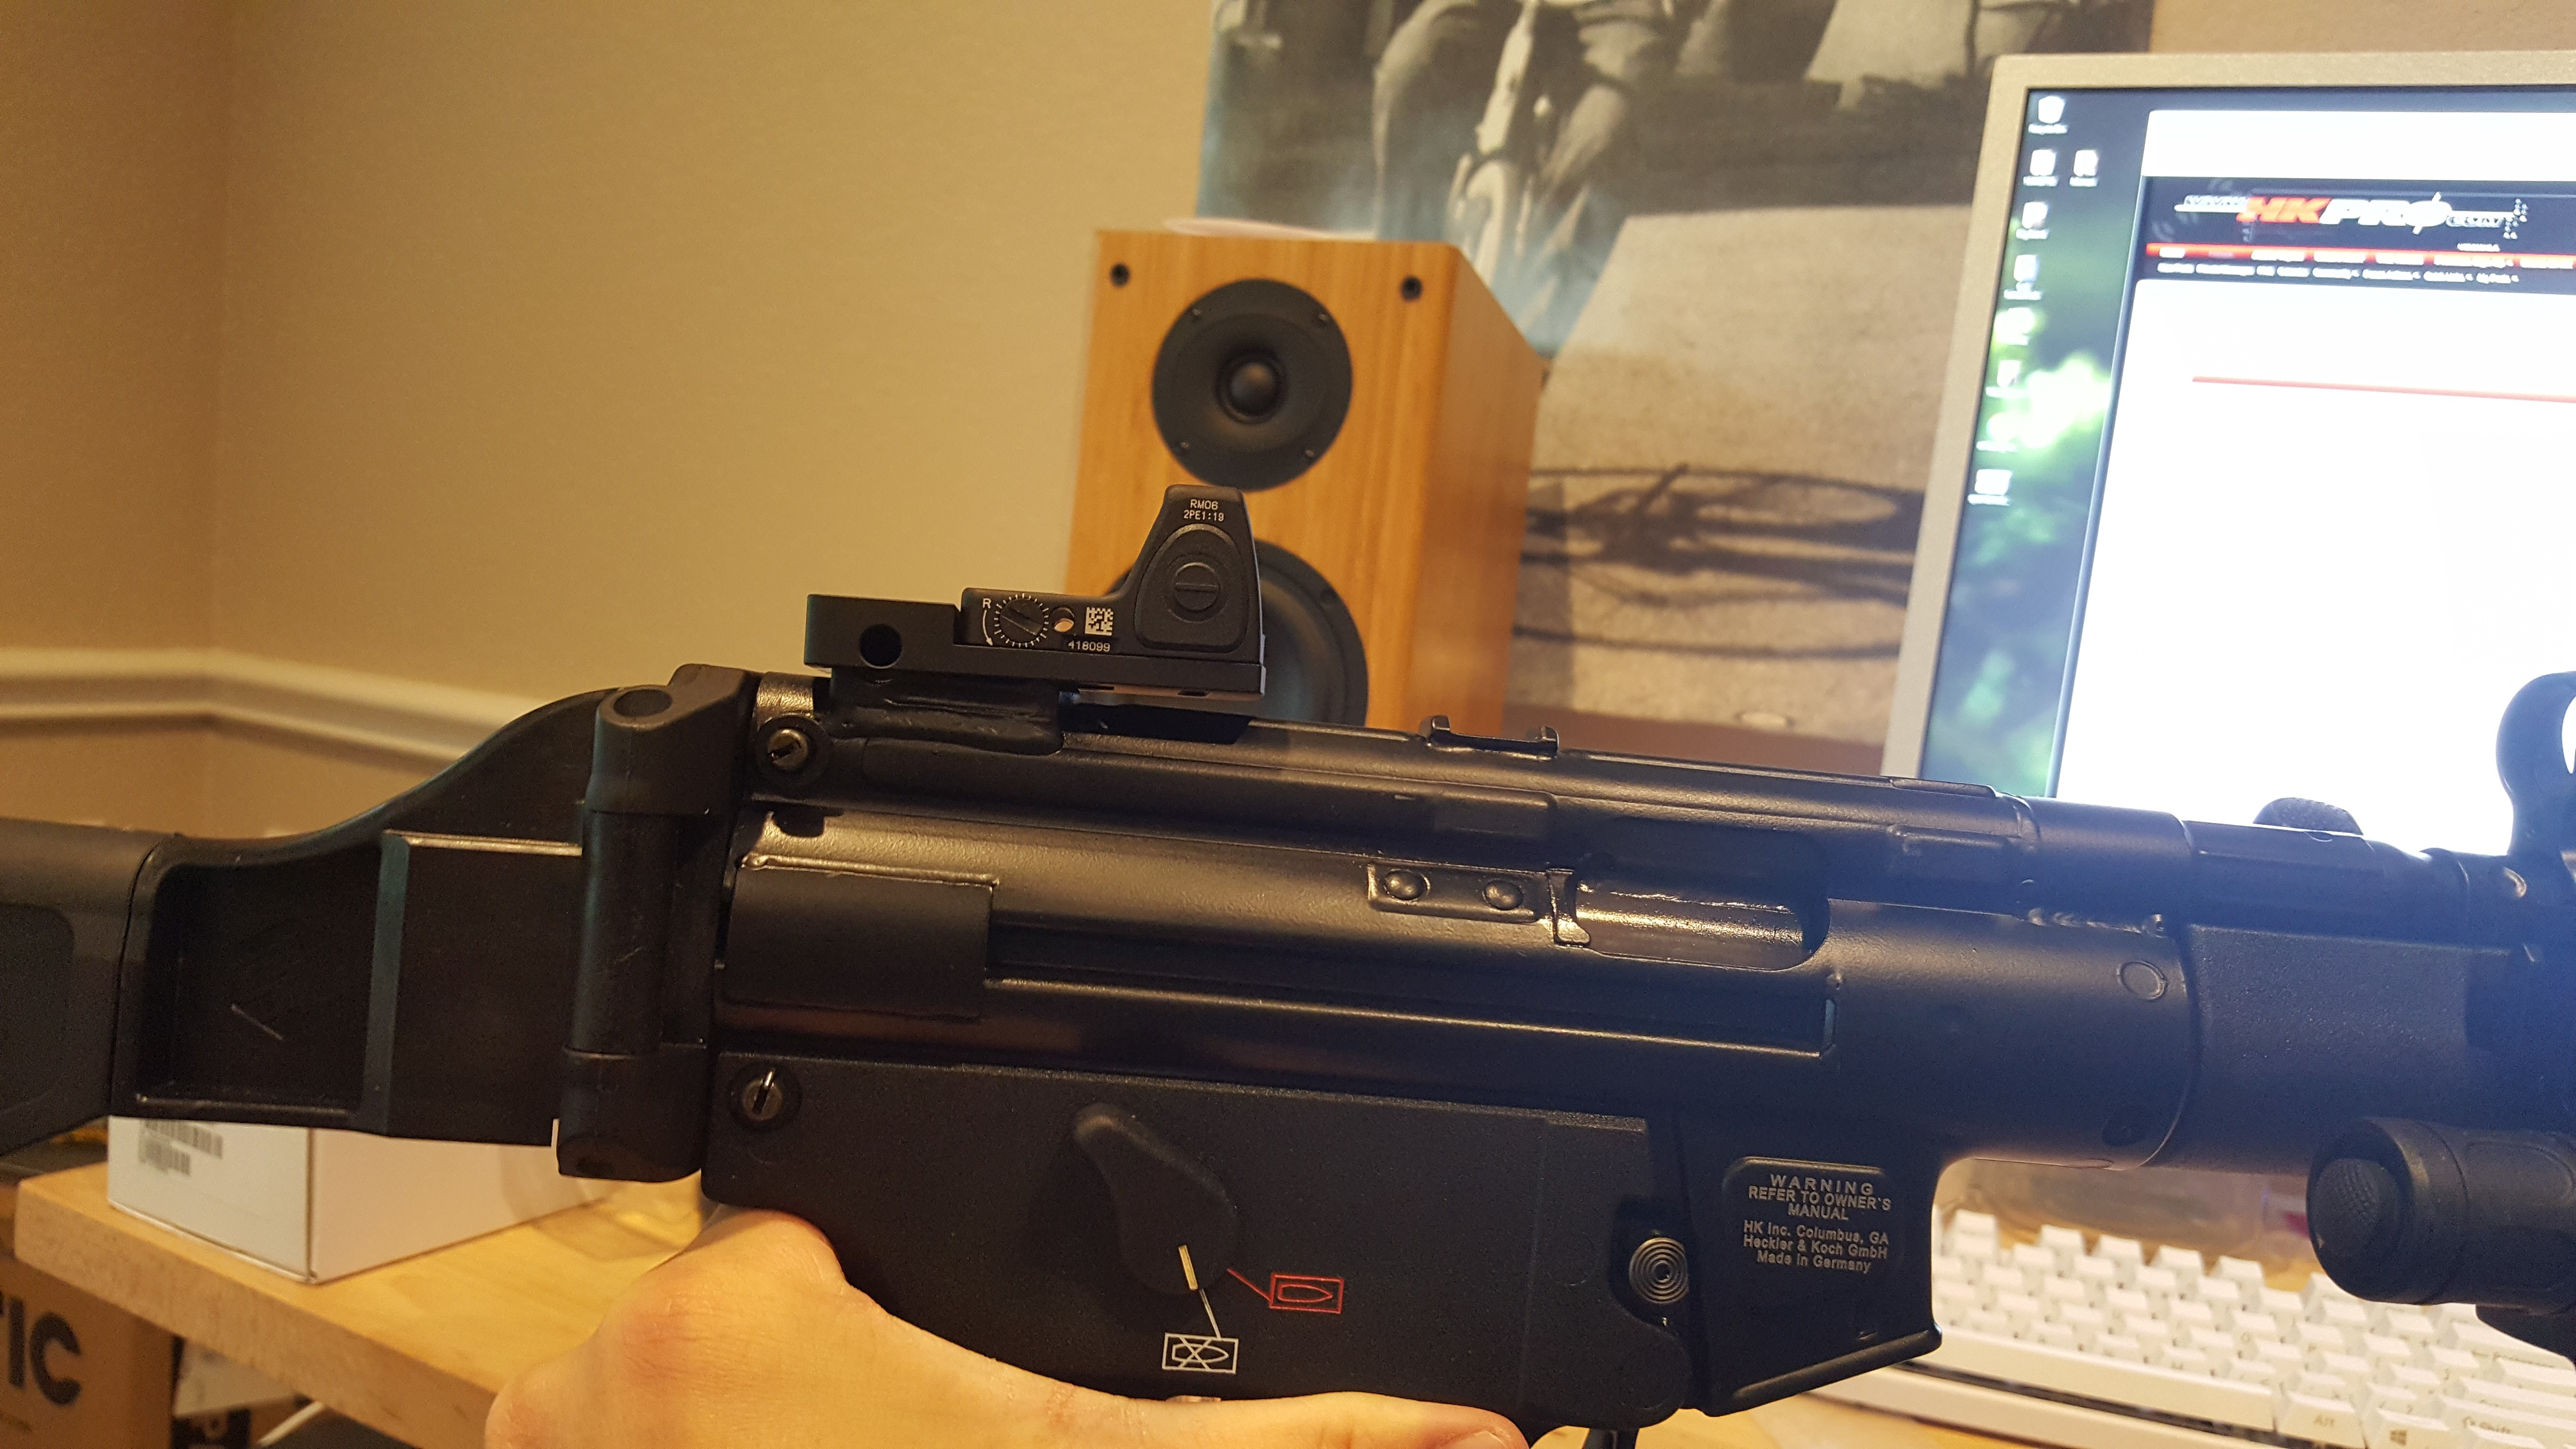 RMR Sight Base Mount for SP5K: Is this normal?-rmrplate1.jpg